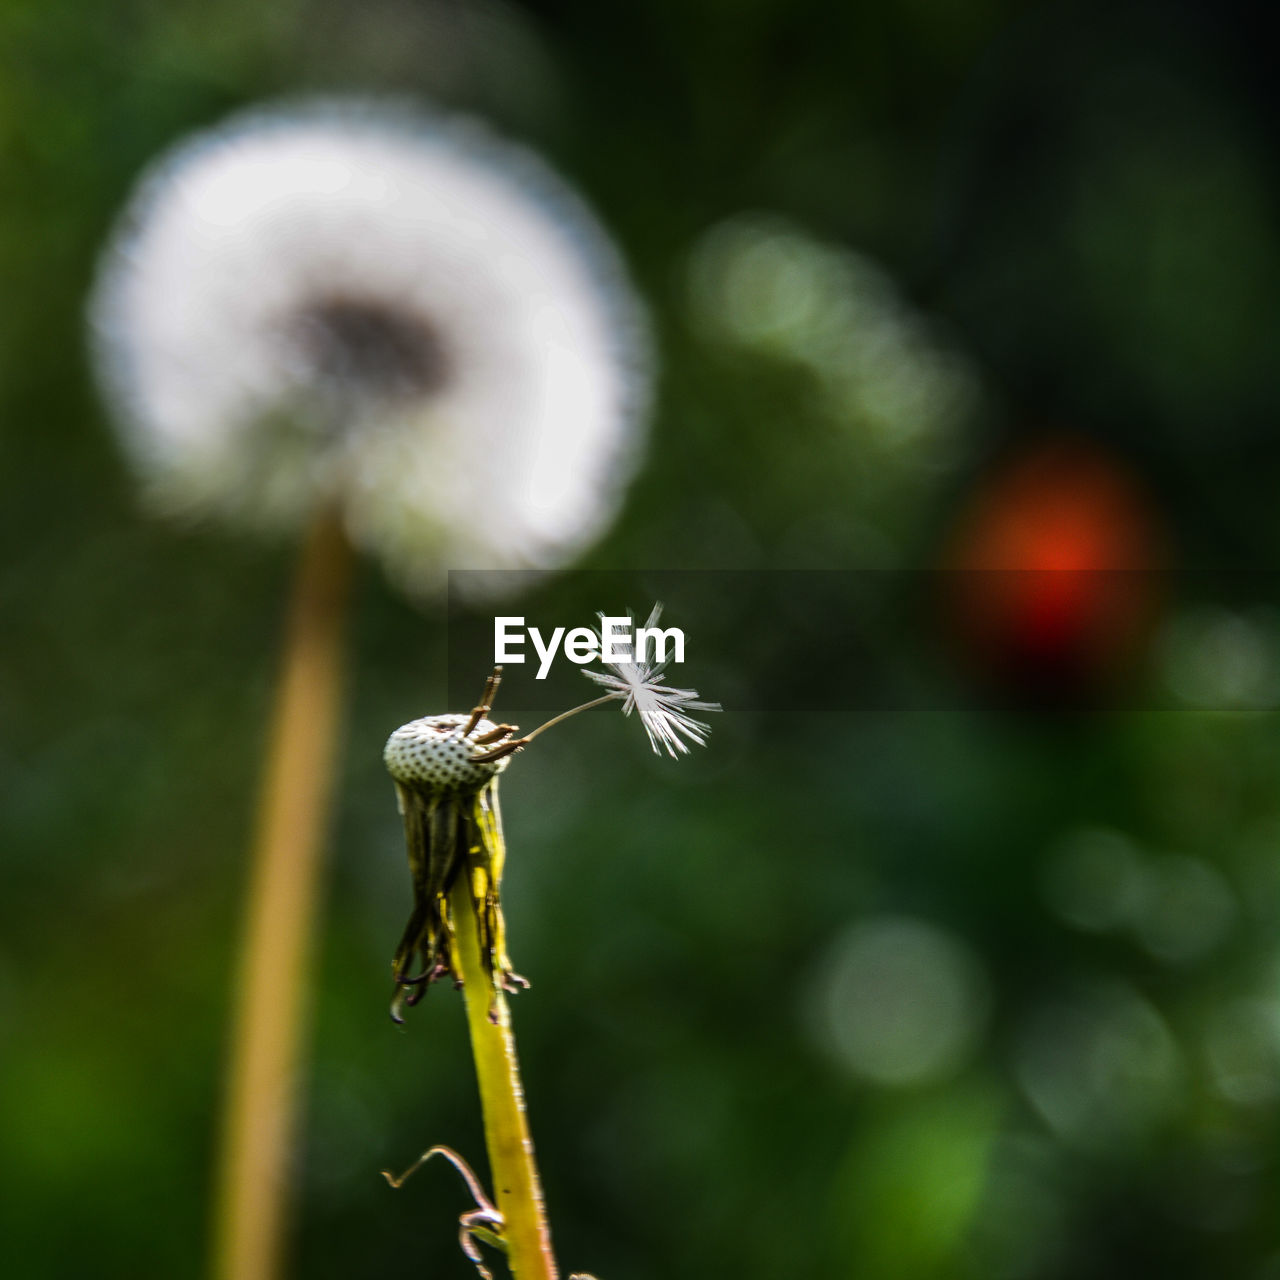 plant, growth, focus on foreground, flower, fragility, close-up, flowering plant, vulnerability, beauty in nature, day, freshness, no people, nature, invertebrate, insect, animal, selective focus, plant stem, animal themes, animals in the wild, outdoors, dandelion seed, flower head, softness